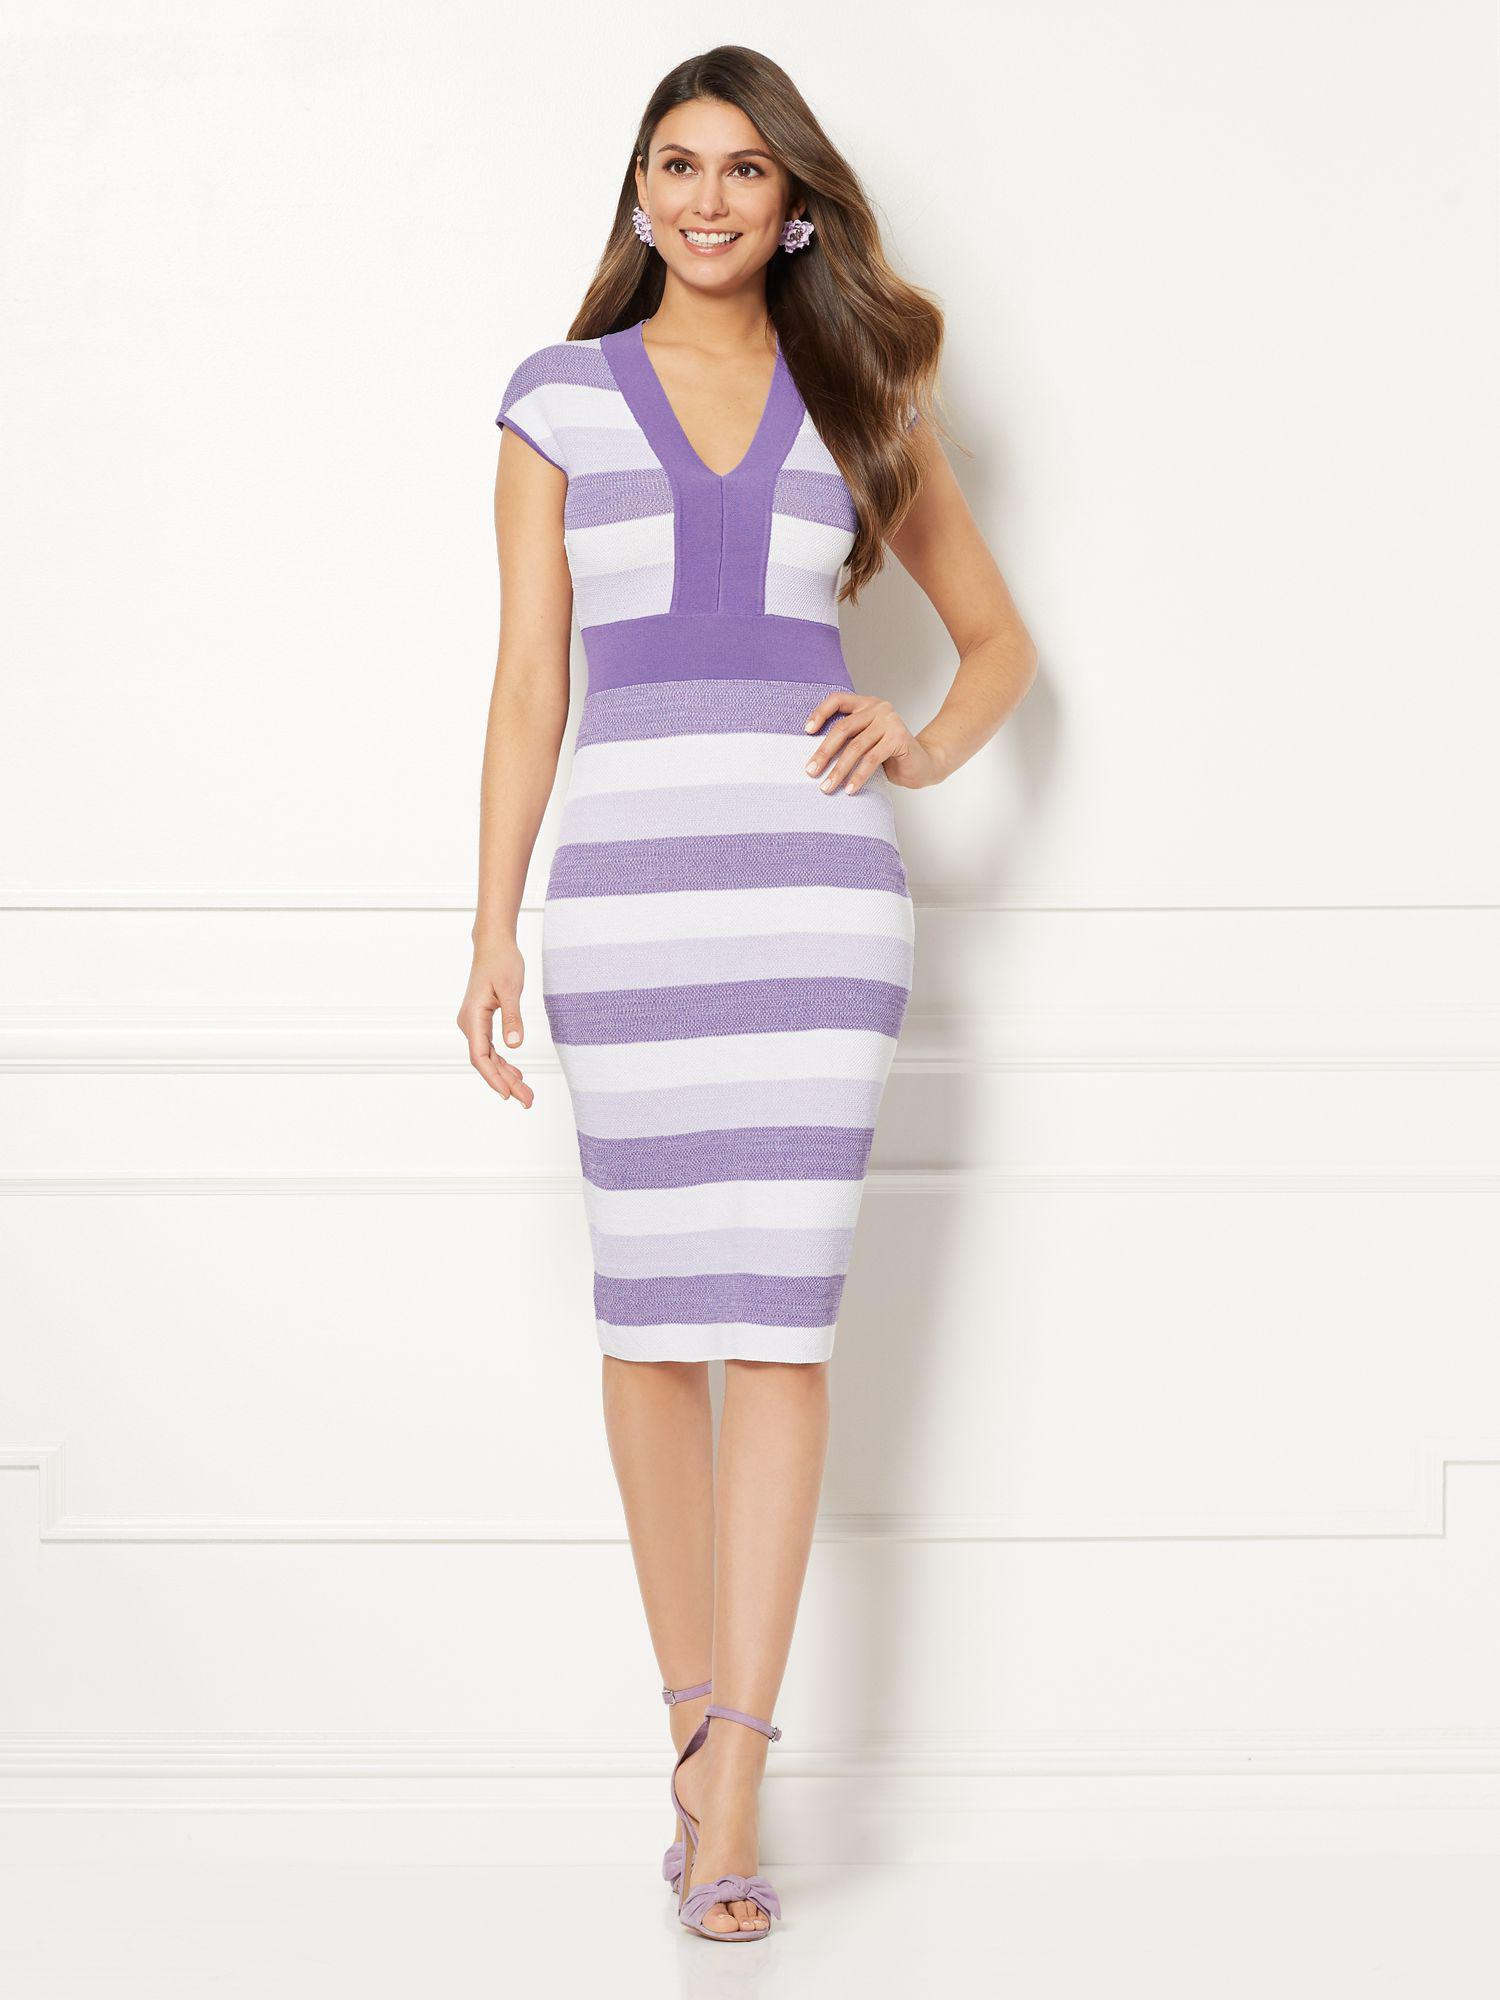 4272f9713a3 New York   Company Eva Mendes Collection - Francisca Sweater Dress ...